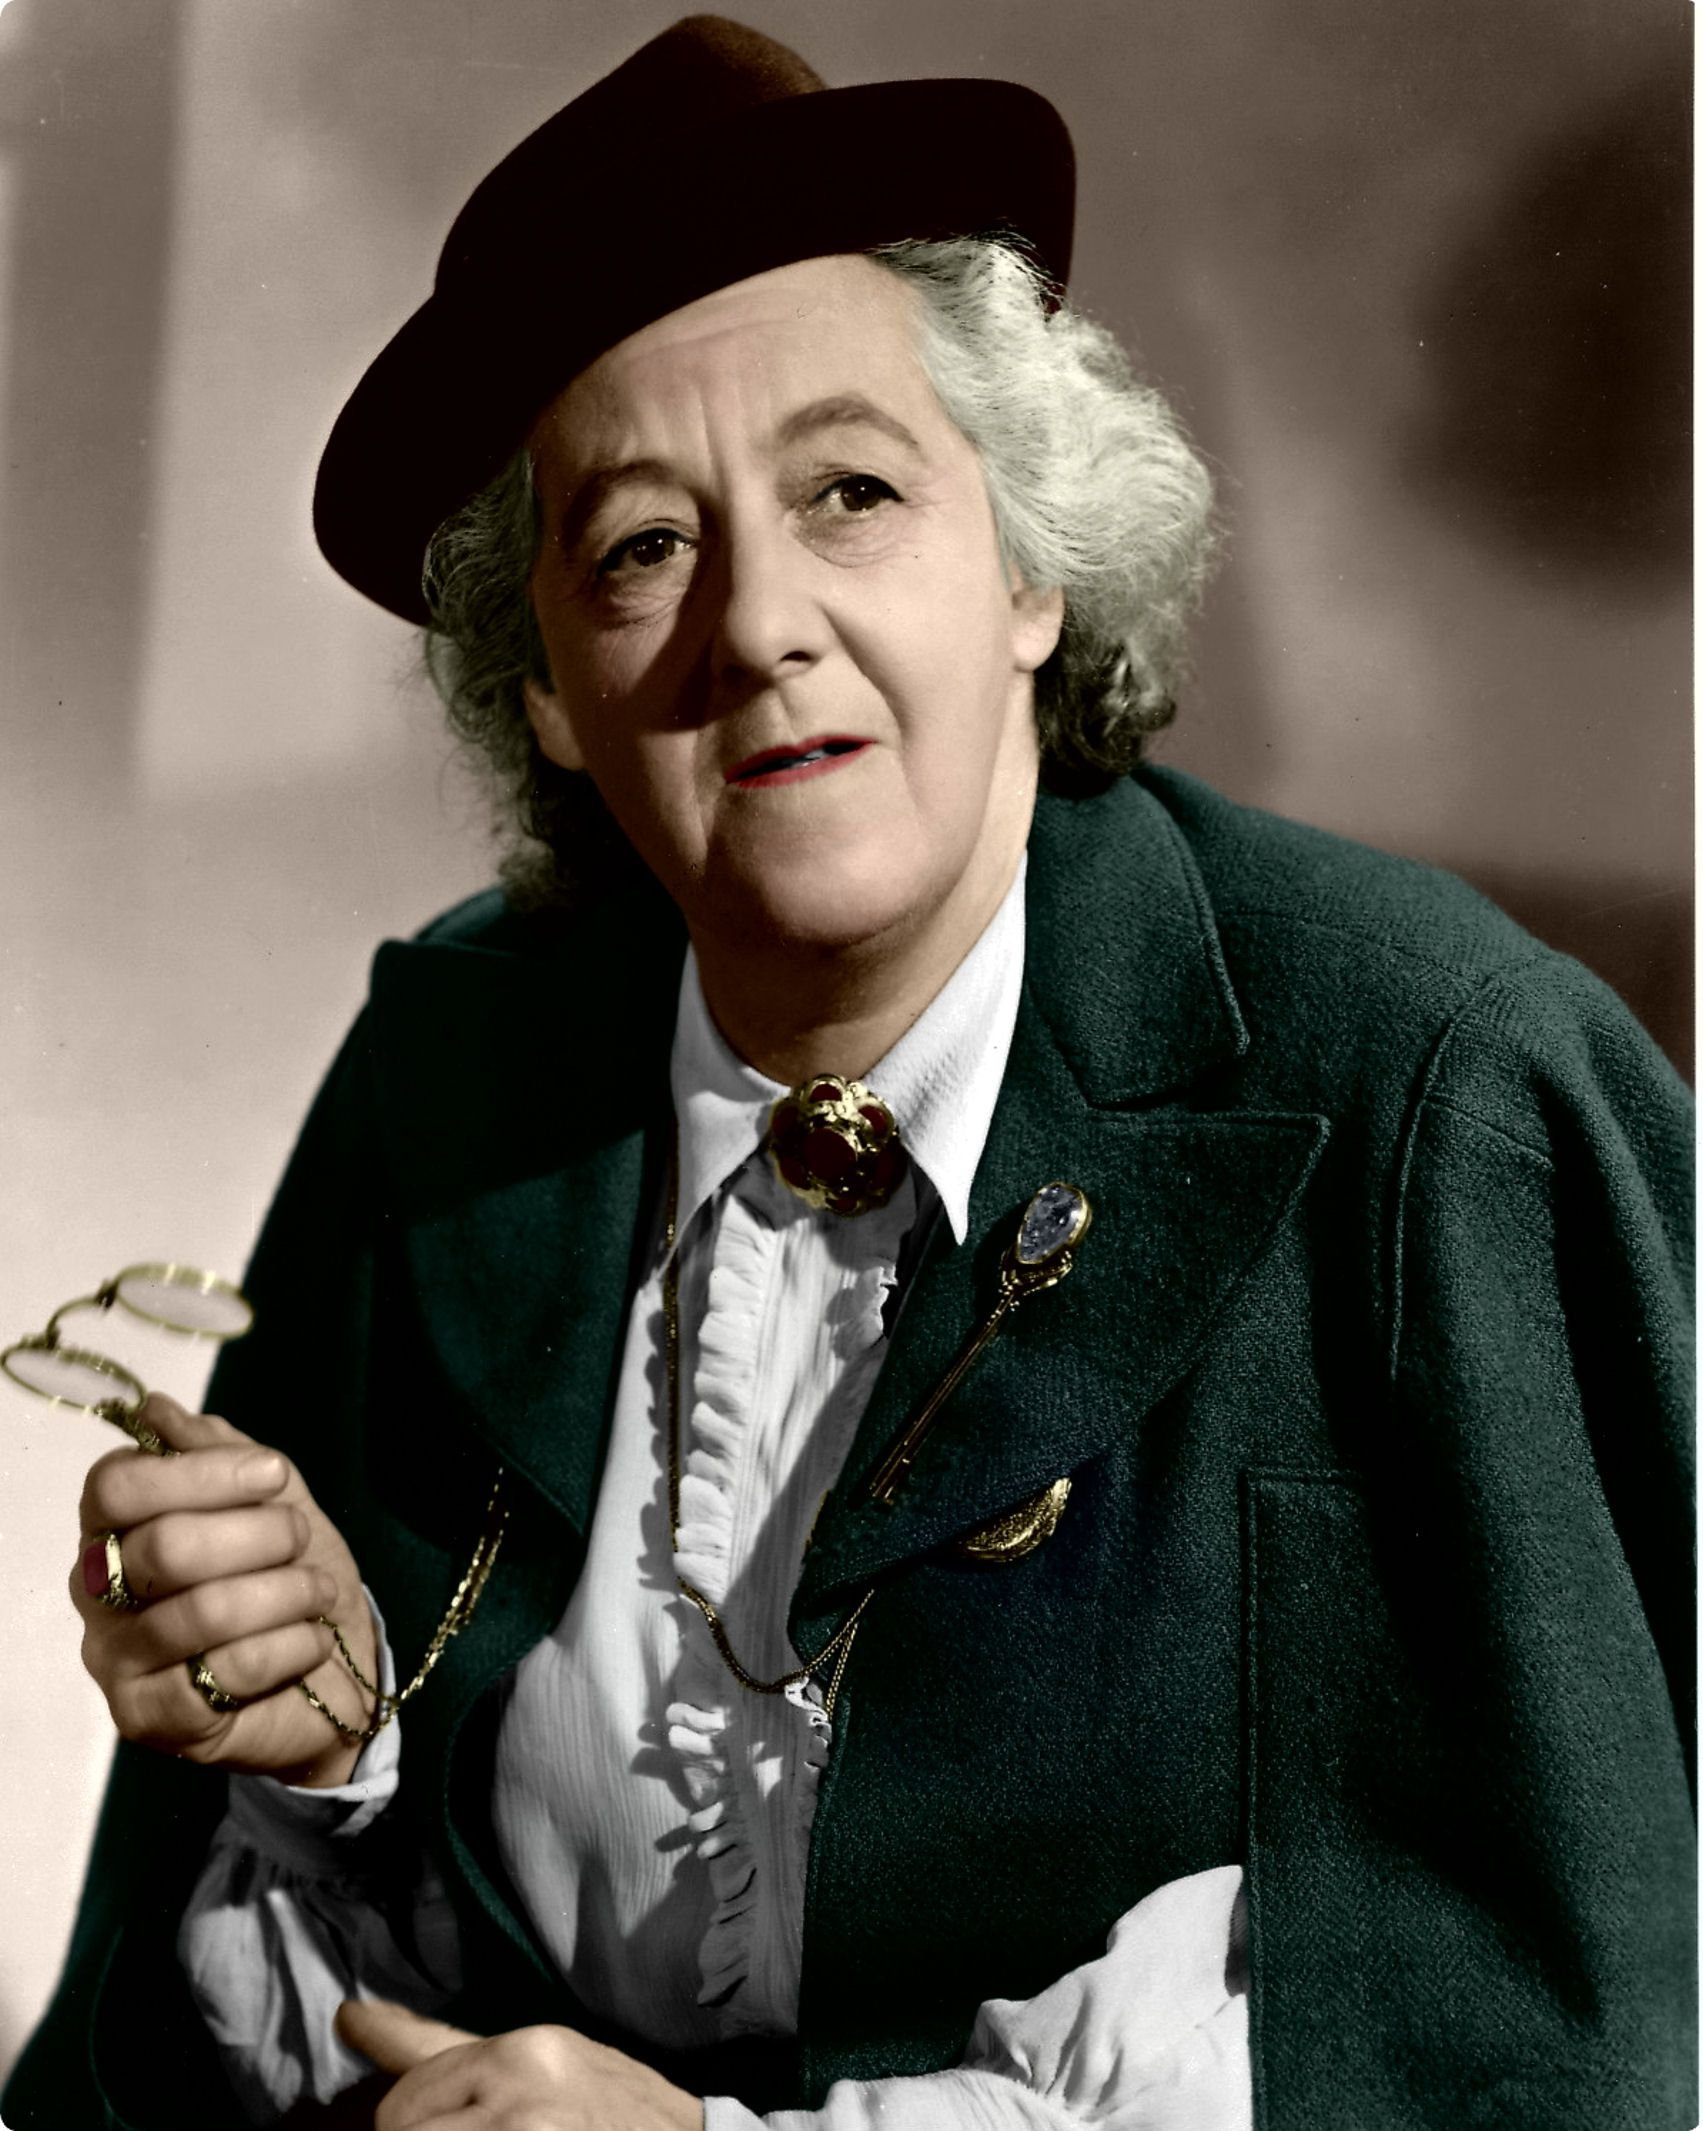 margaret rutherford - Google Search